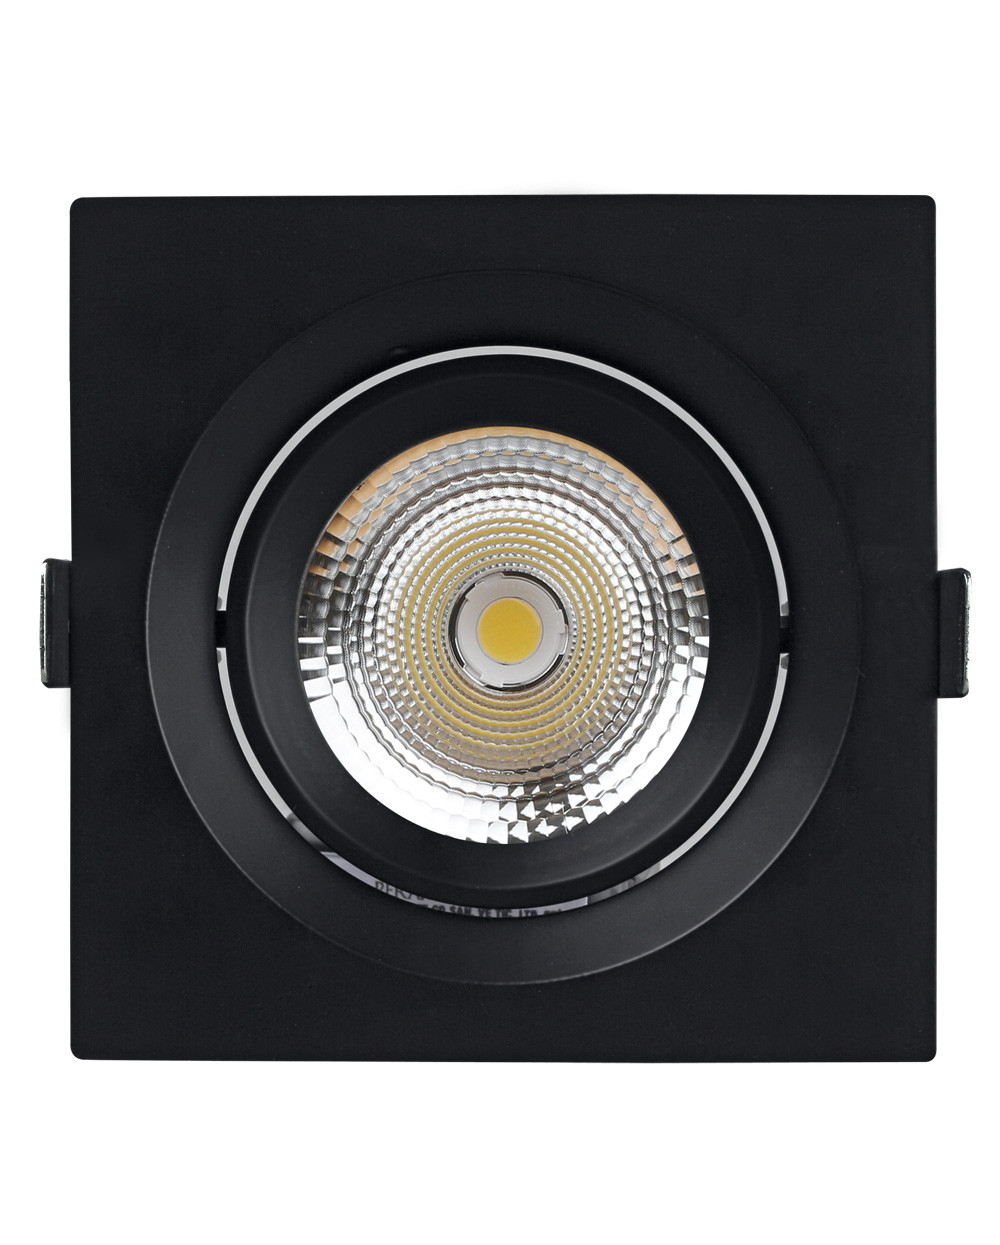 ANGEL-S 9W Oynar Başlı COB Led Downlight - ALOB.187